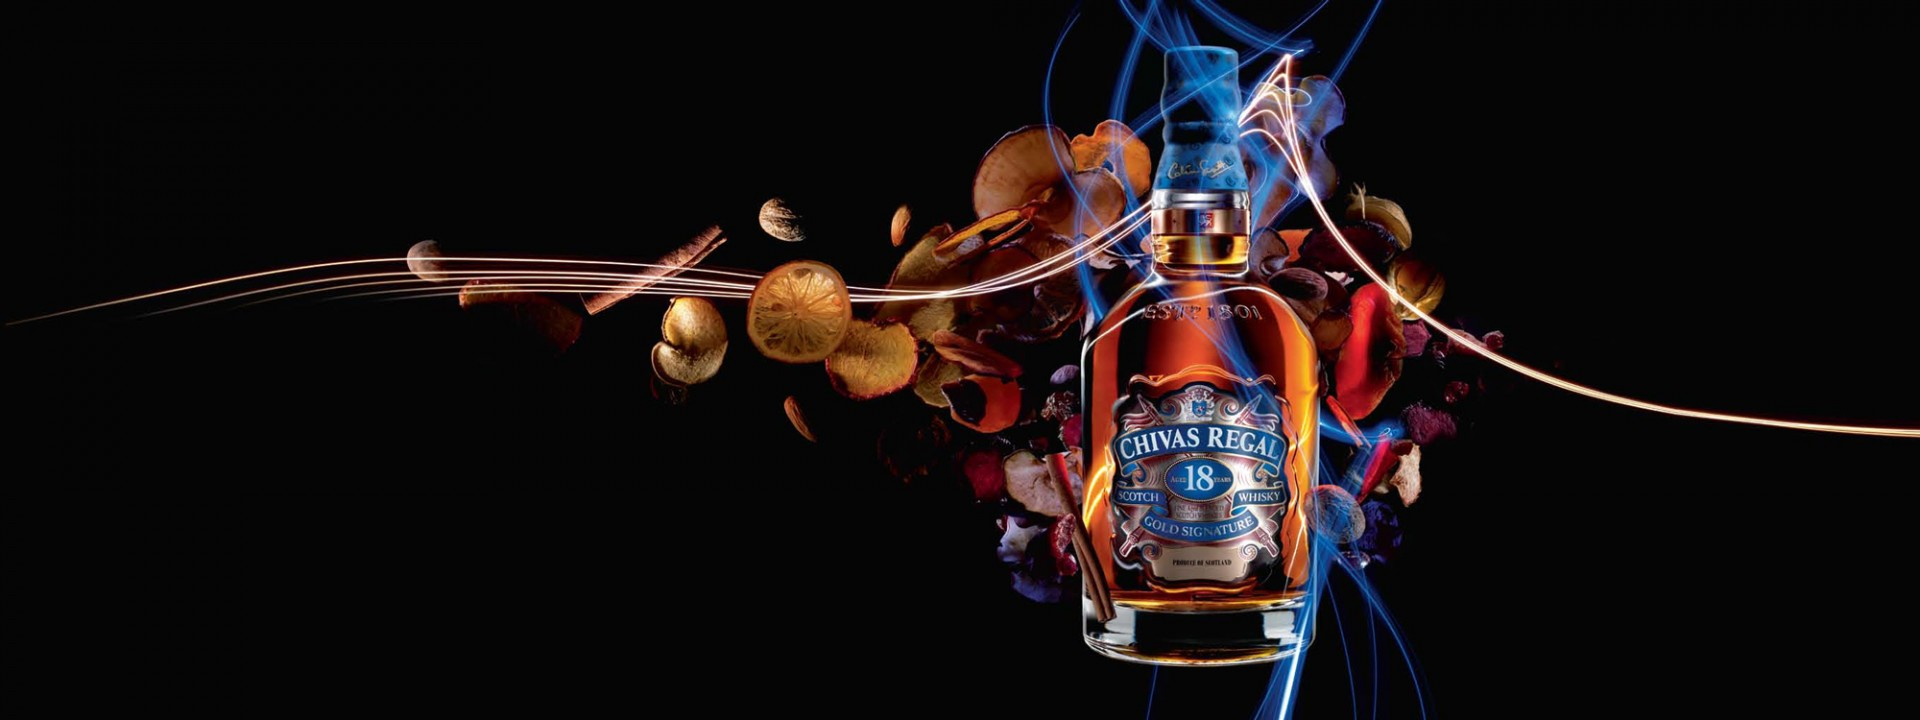 Chivas Regal On Blue Background Image HD Wallpapers Desktop PC ...